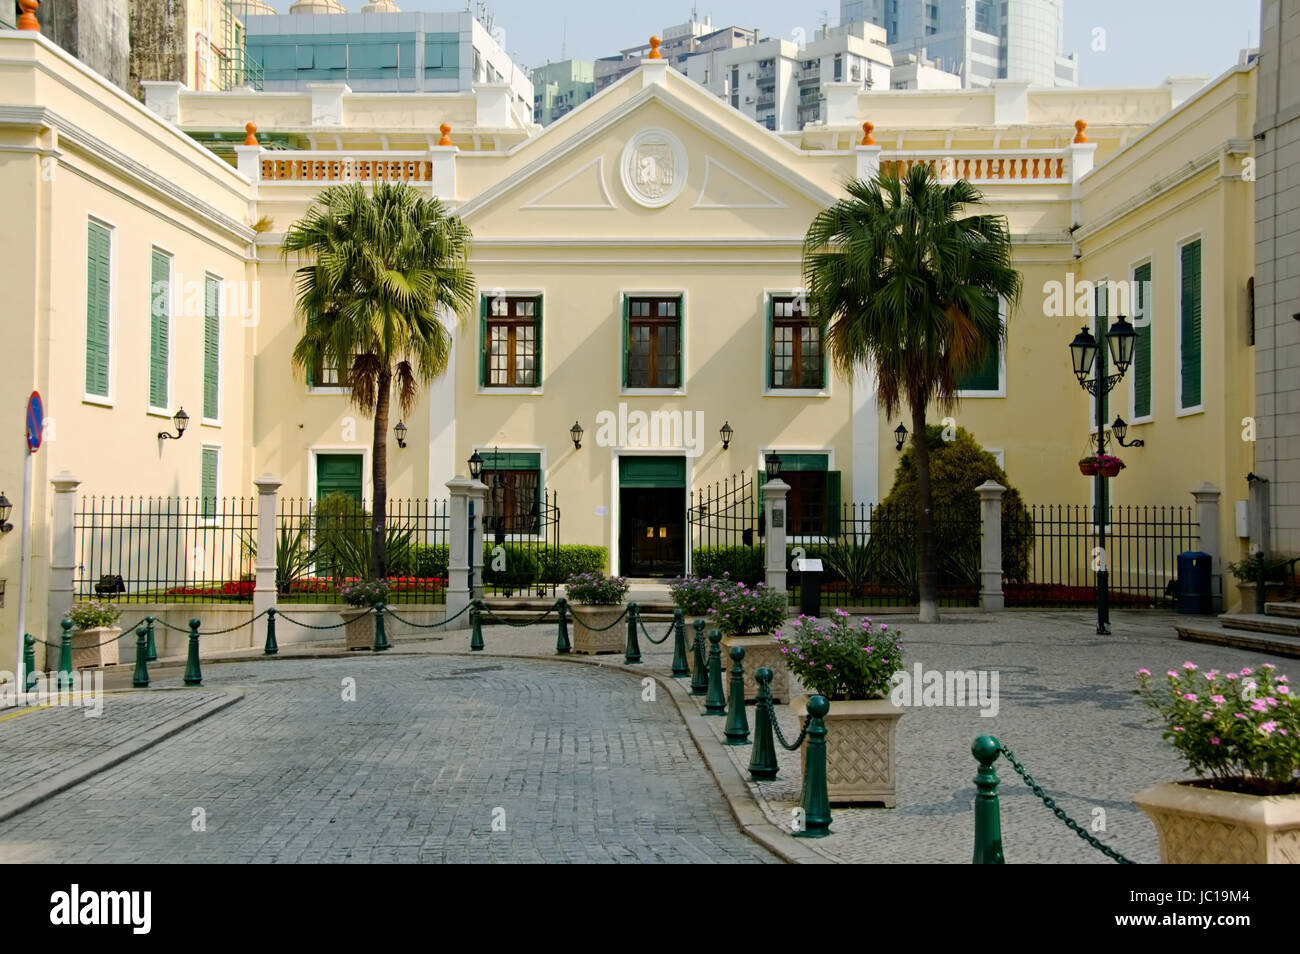 A view of classical chruch architecture in Macau - Stock Image